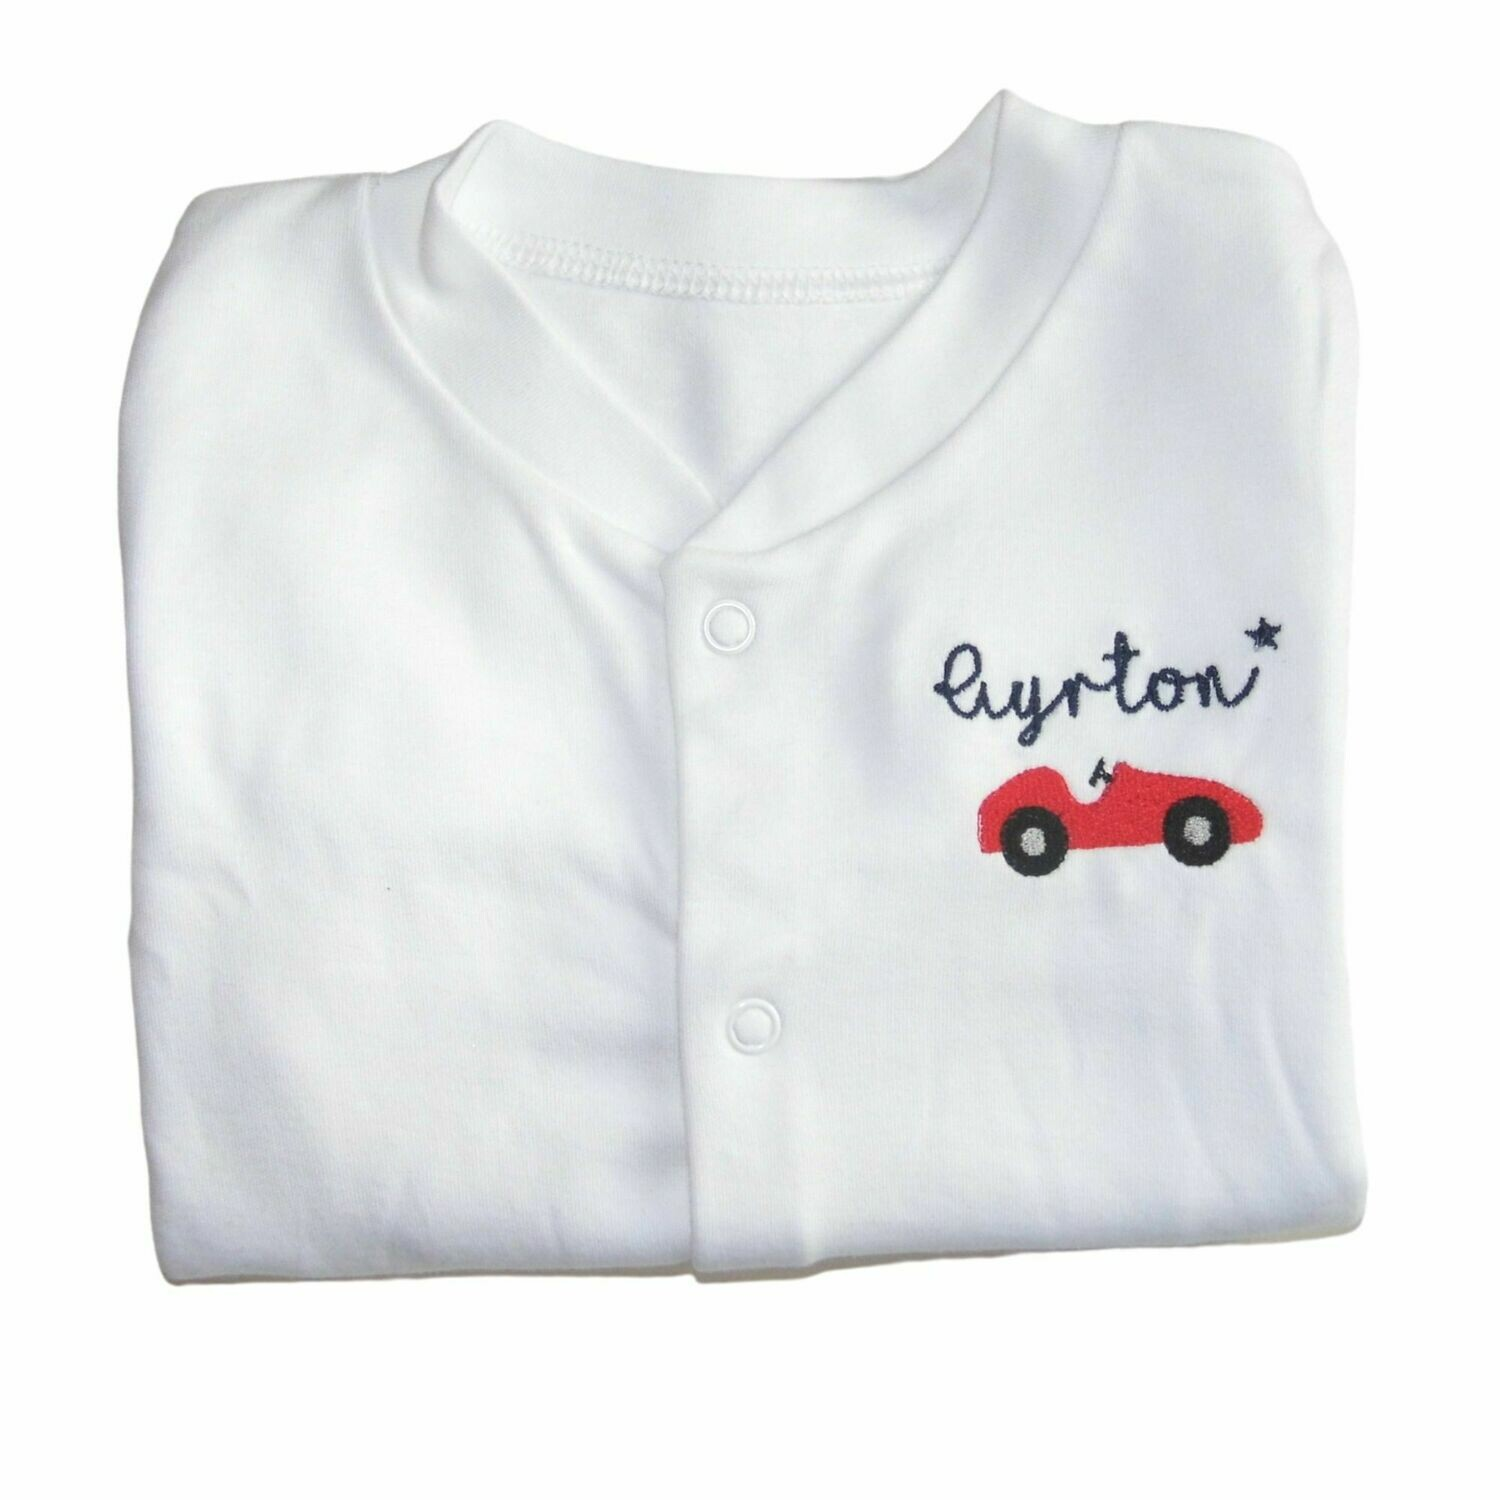 Personalised Baby Sleepsuit with Embroidered Racing Car